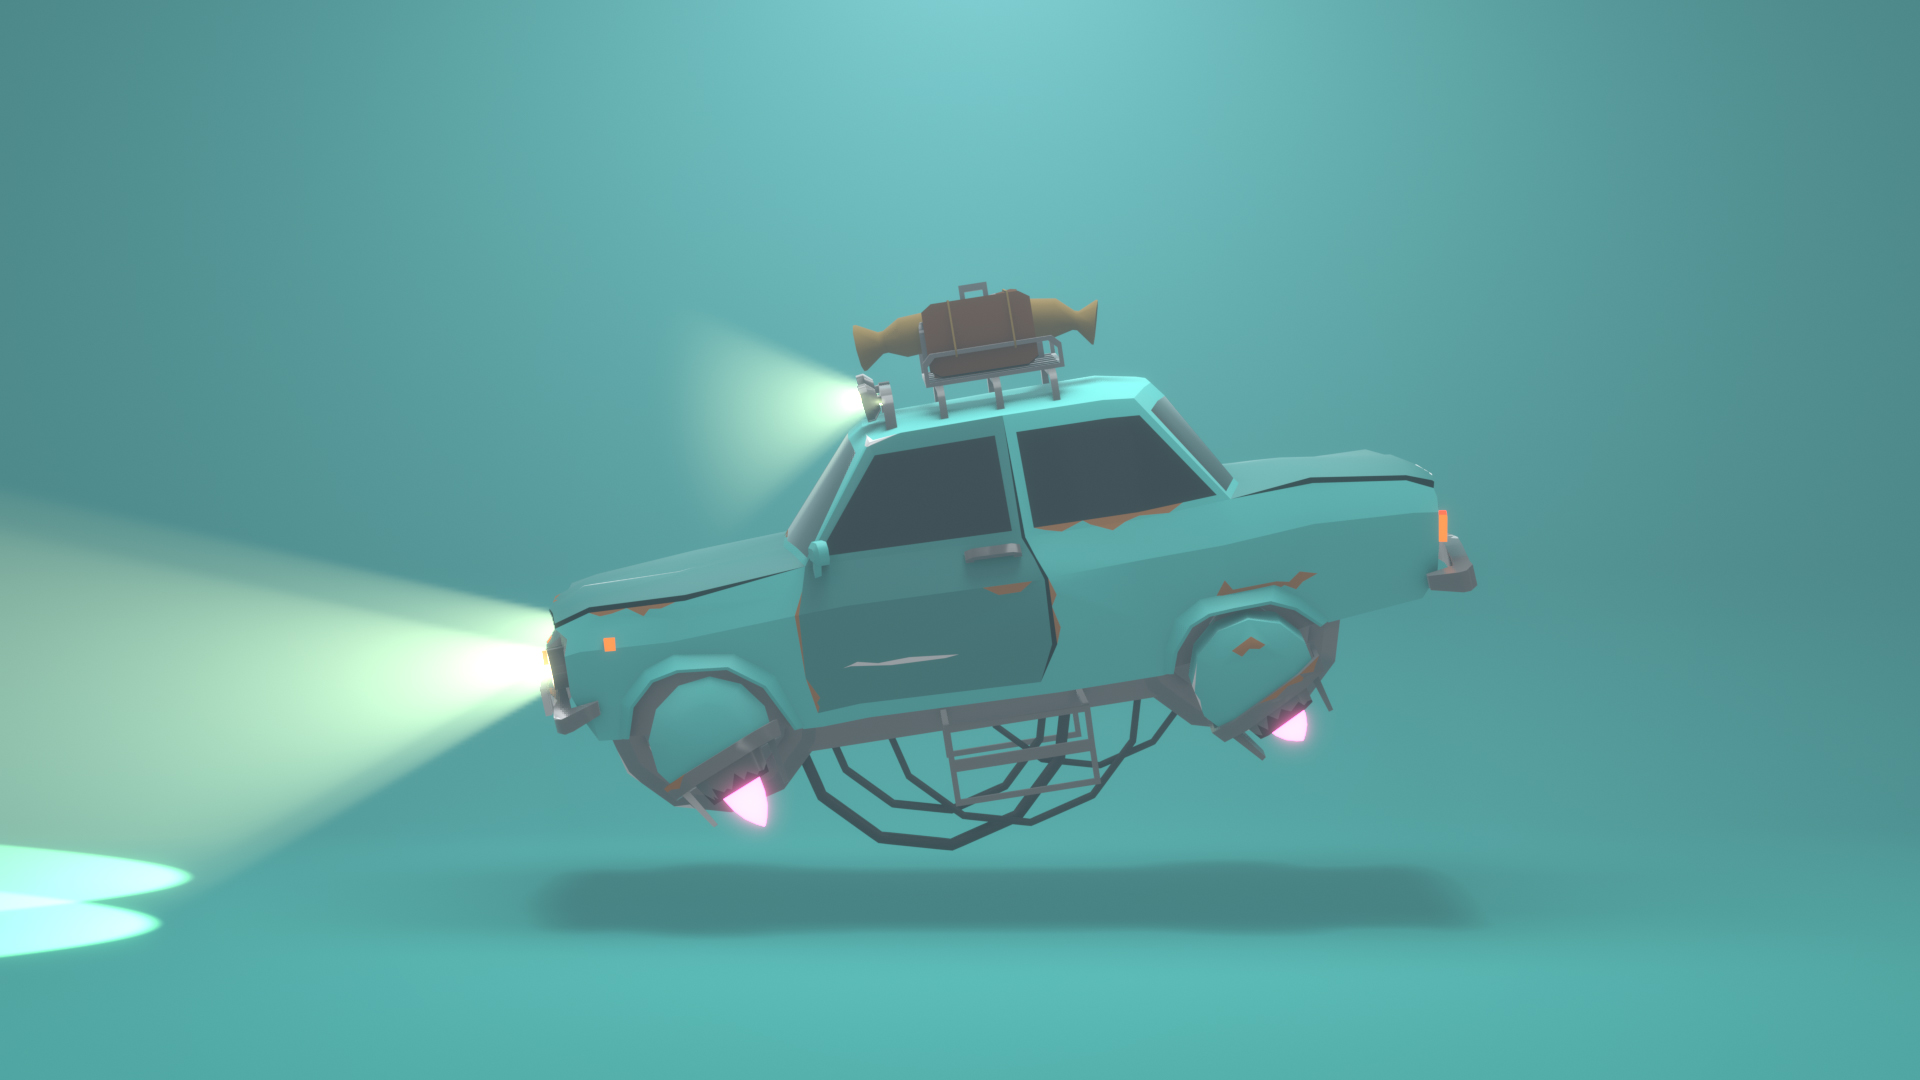 Flying Sci-fi Car by Duko Stolwijk